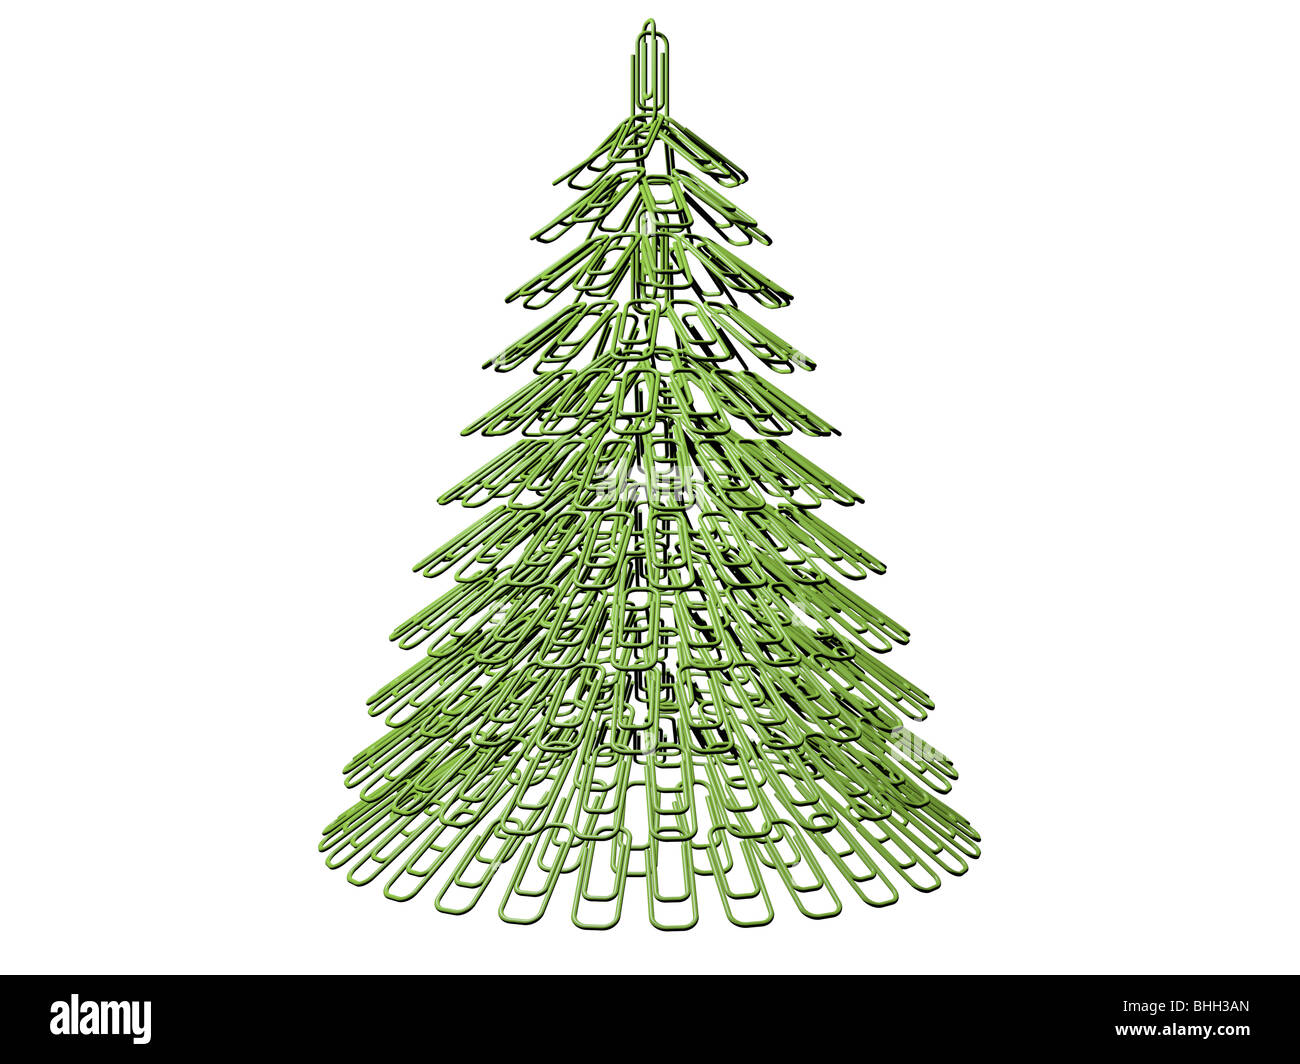 The green Christmas tree maiden with office fastener - Stock Image